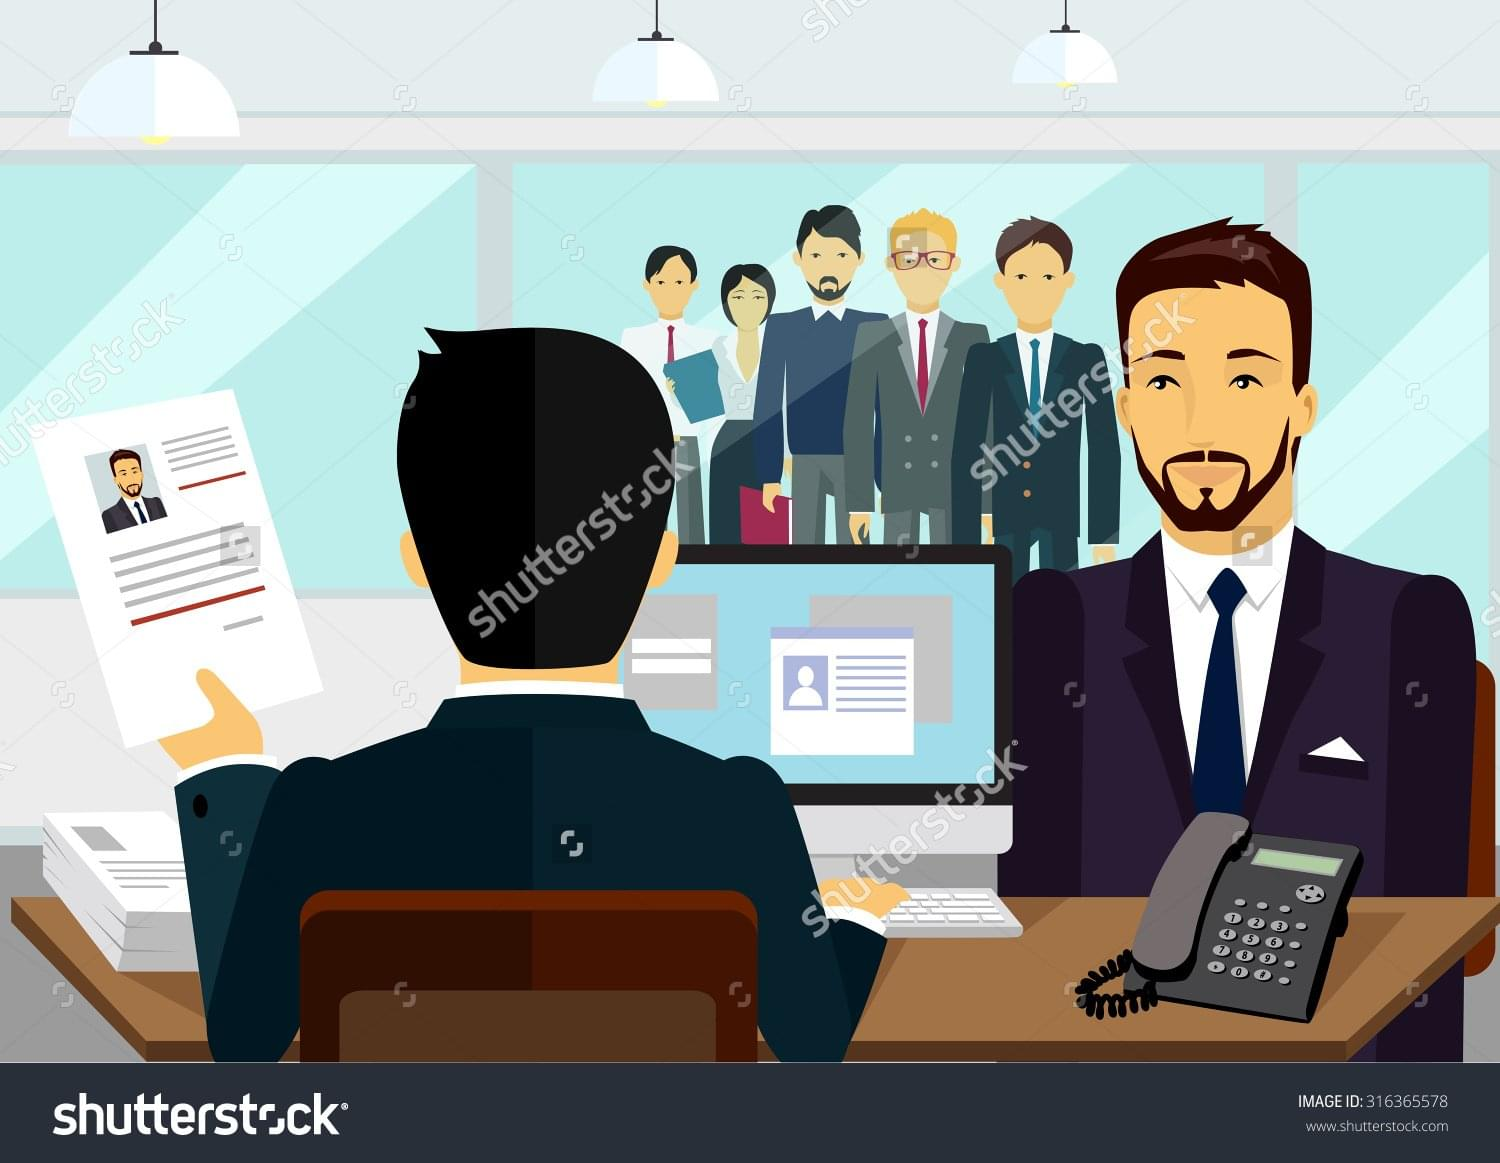 stock-vector-concept-of-hiring-recruiting-interview-look-resume-the-applicant-employer-candidate-and-316365578